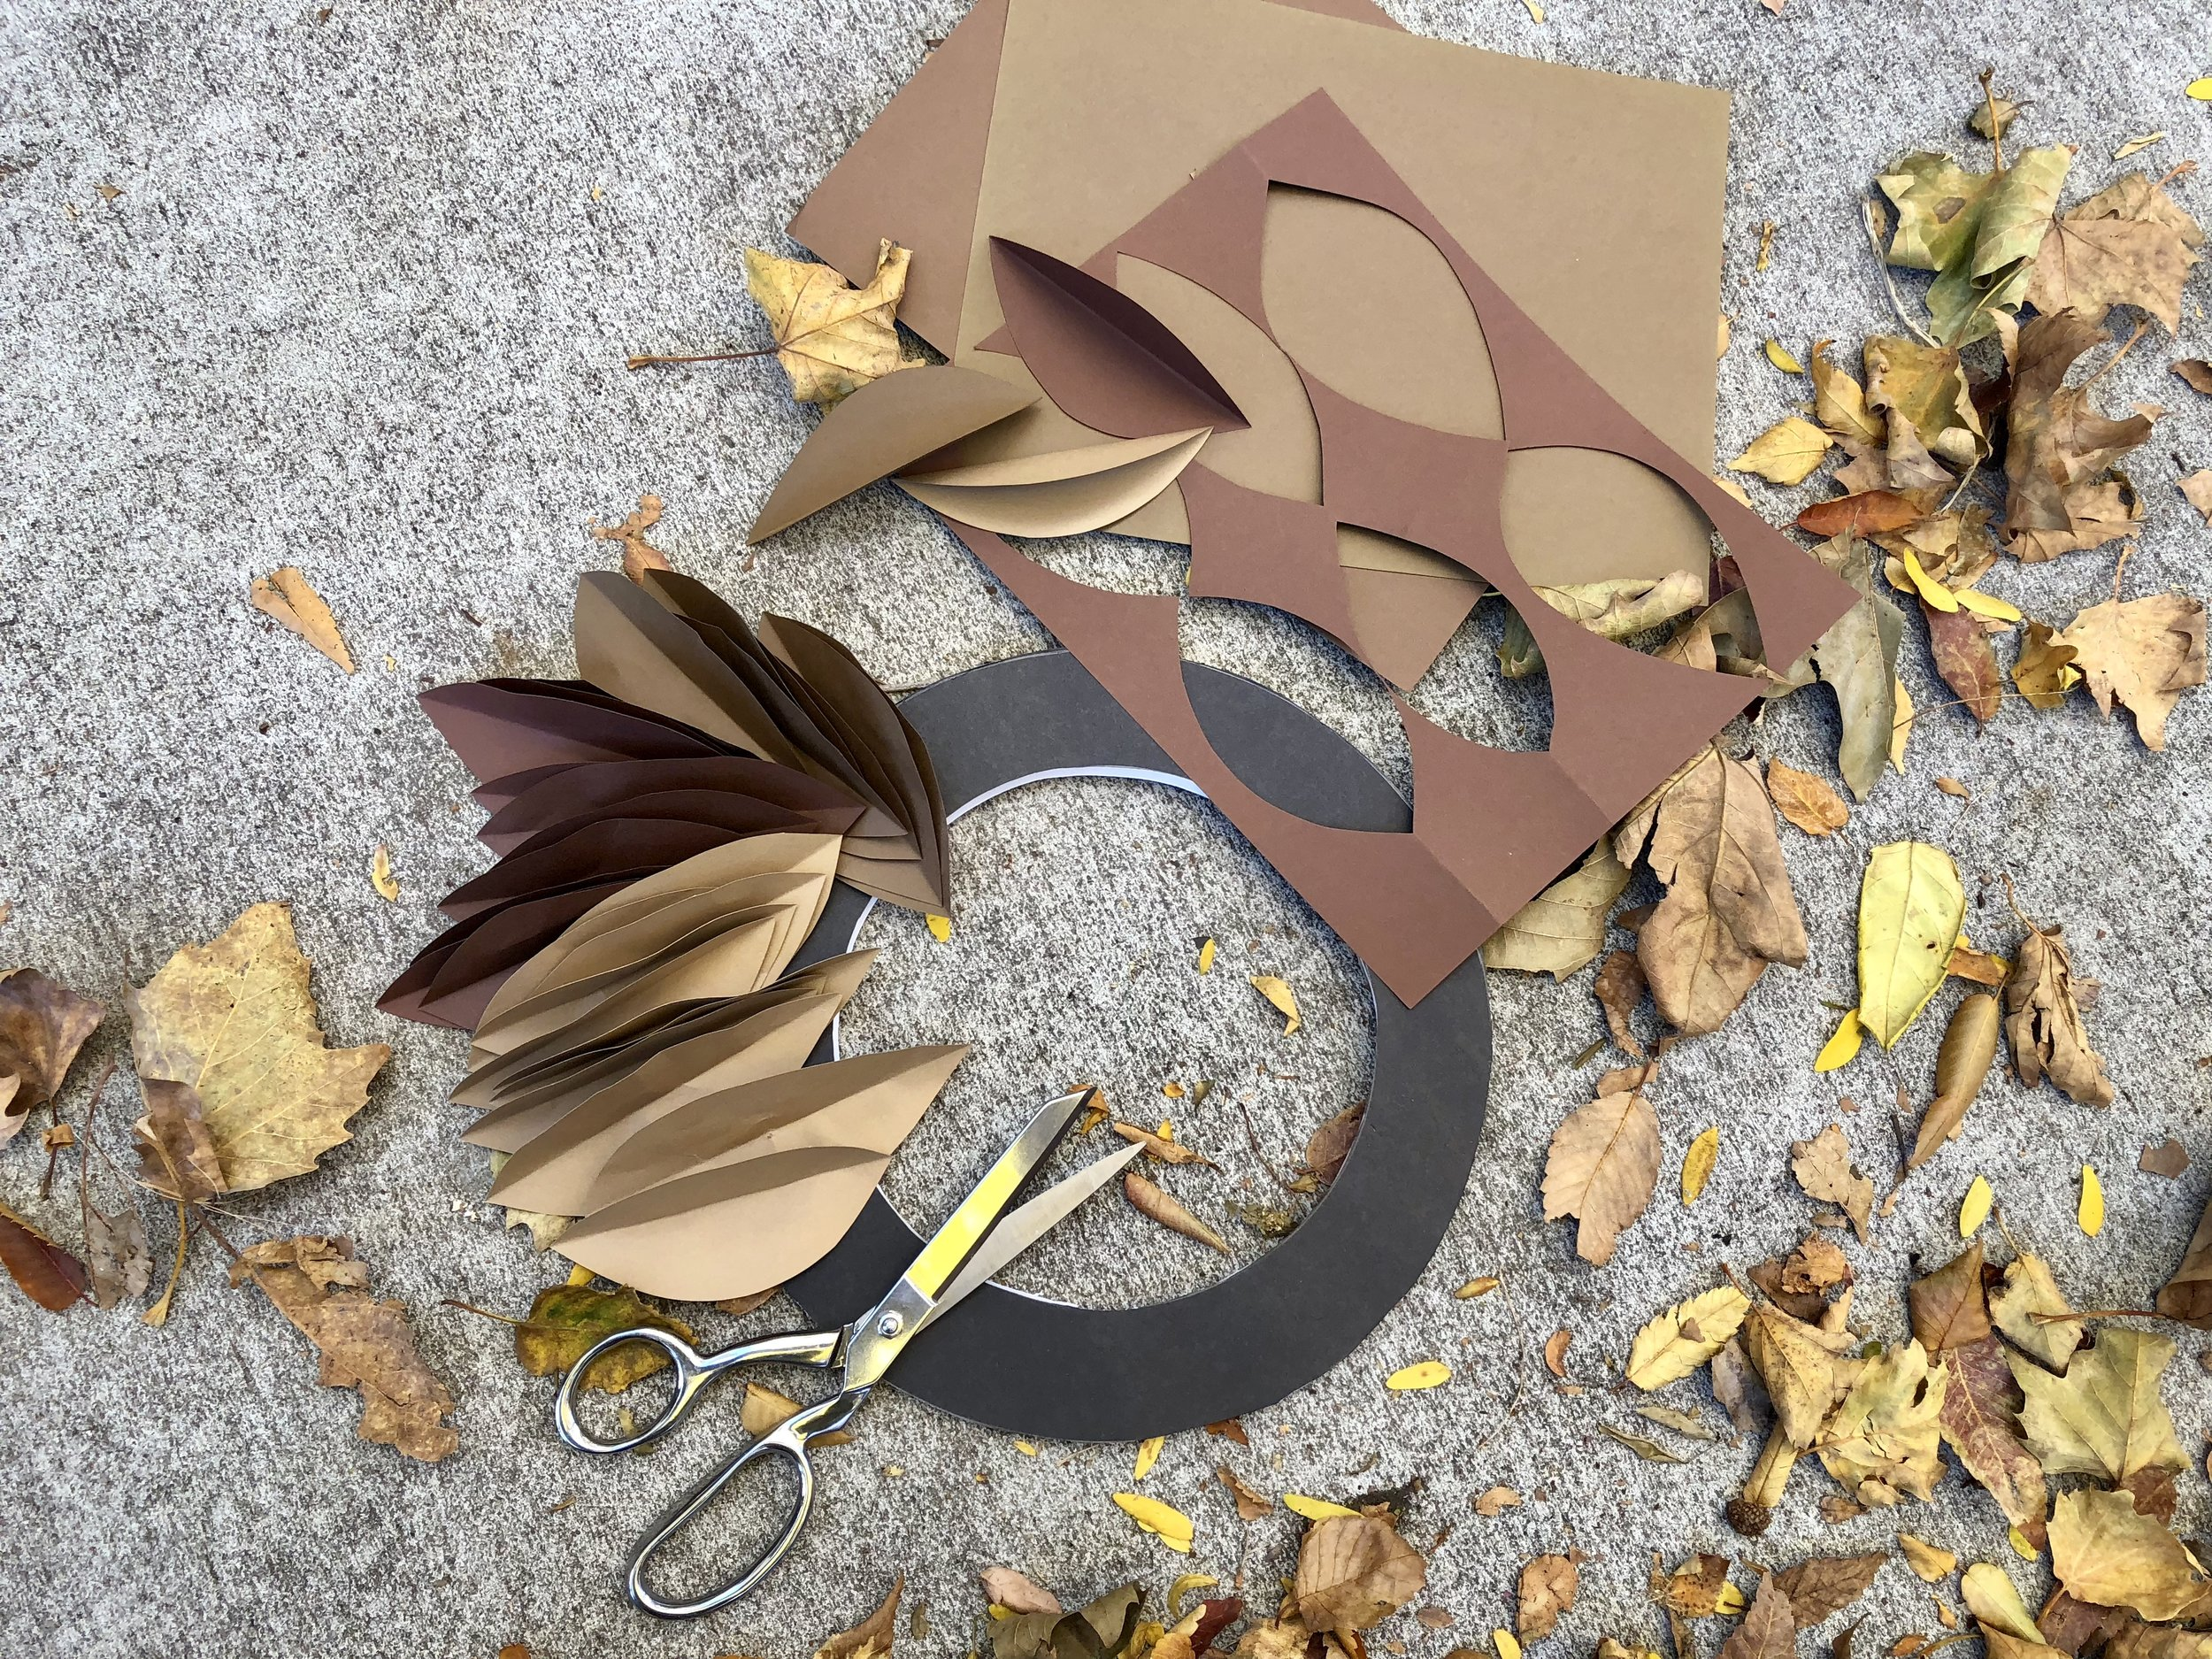 Easy DIY Paper Magnolia Wreath using cardstock and foam board  #paper #papercrafts #papercraftdiys #rachaelray #fallwreath #fall #falldiy #autumn #autumndiy #magnoliawreath #paperwreath #falldecor #falldecorations #leaves #diyleaves #paperleaves #wreathring #wreath #autumnwreath #dollarstore #dollarstorecrafts #easycrafts